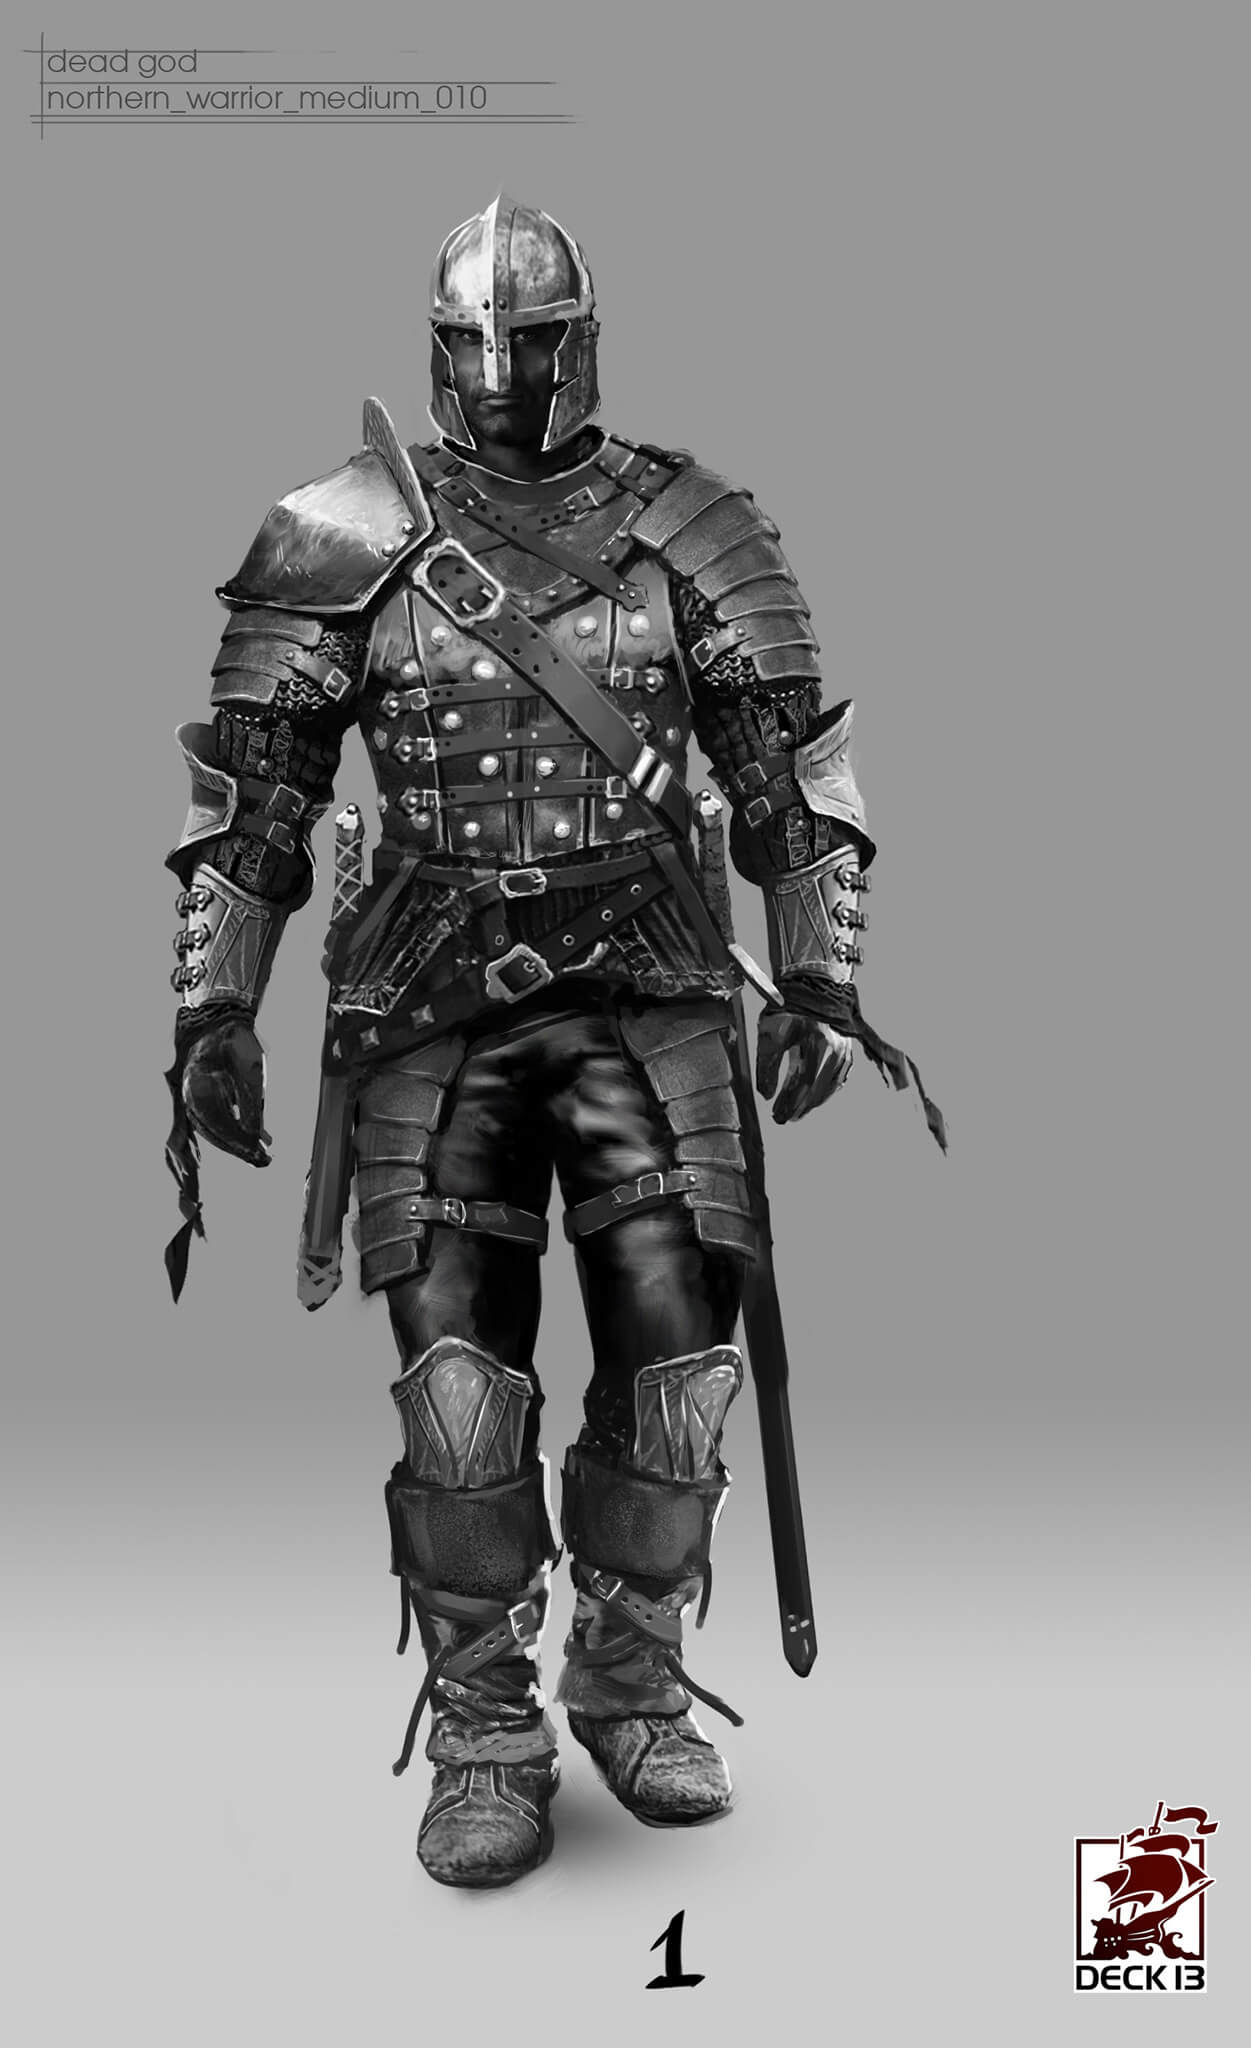 Dead-god-deck13-felix-botho-haas-concept-art-PH_warrior_medium_010